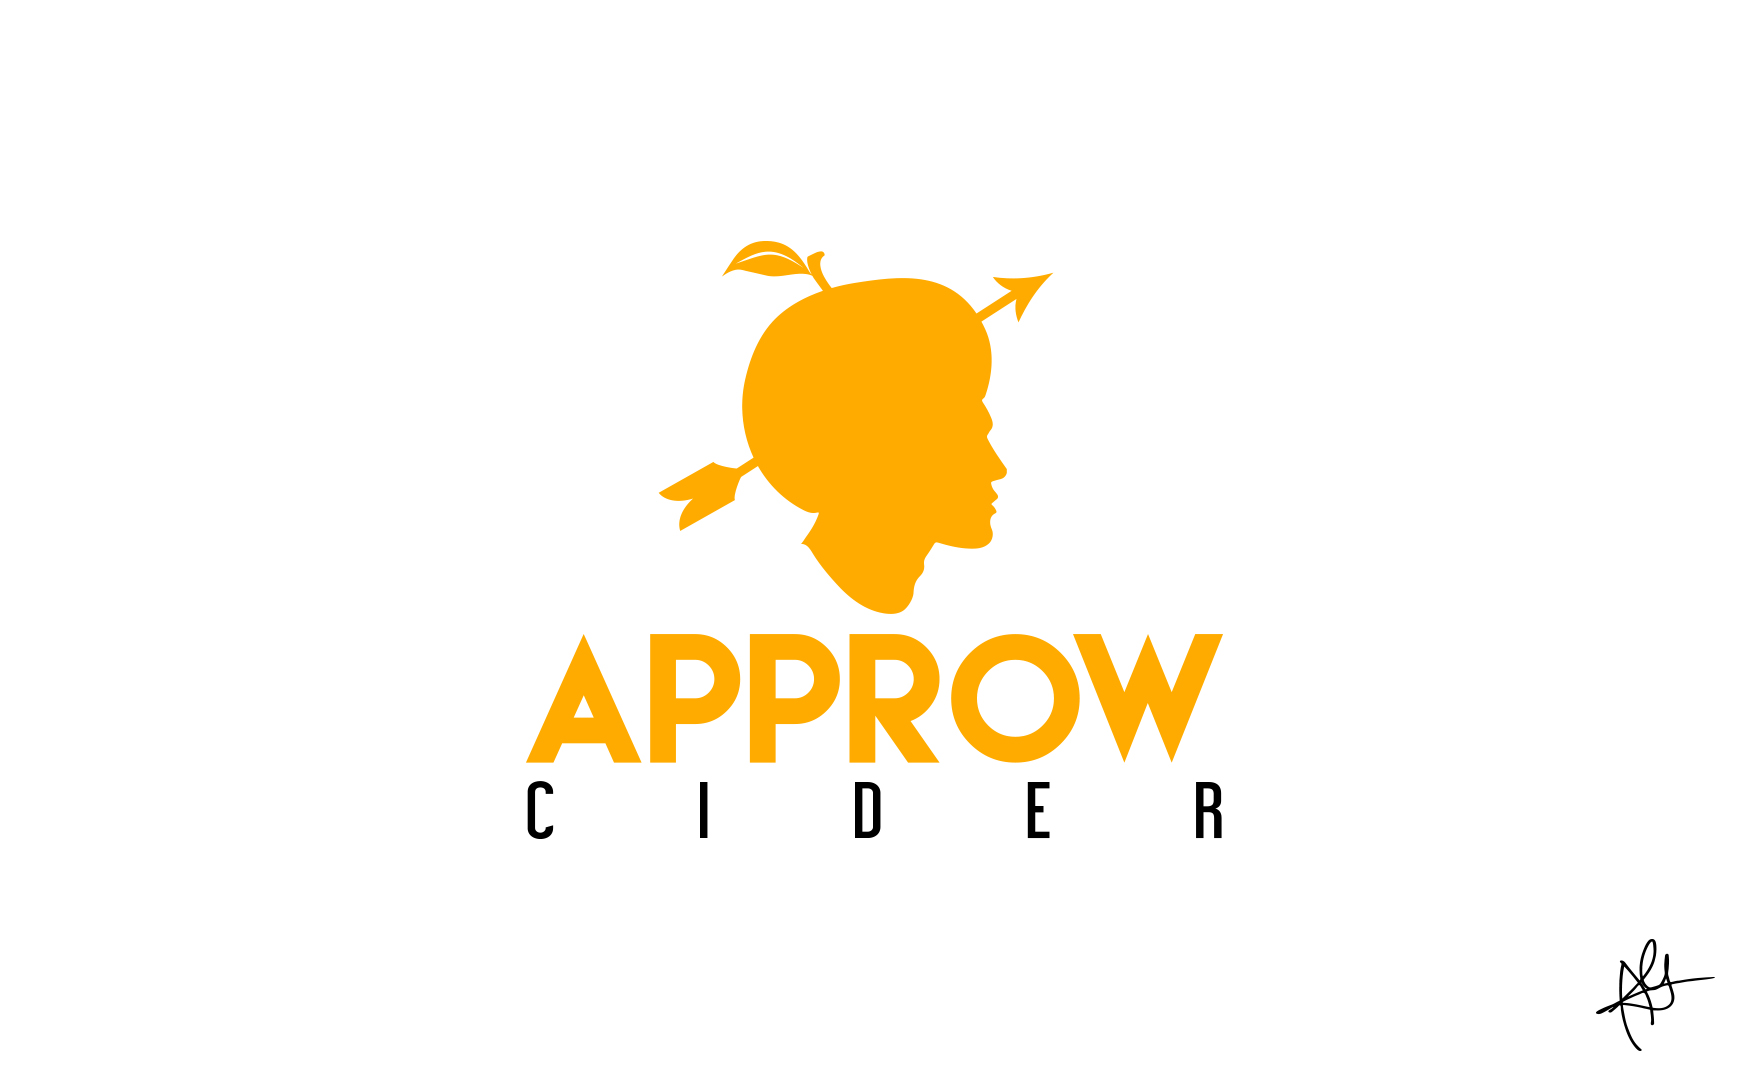 APPROW CIDER